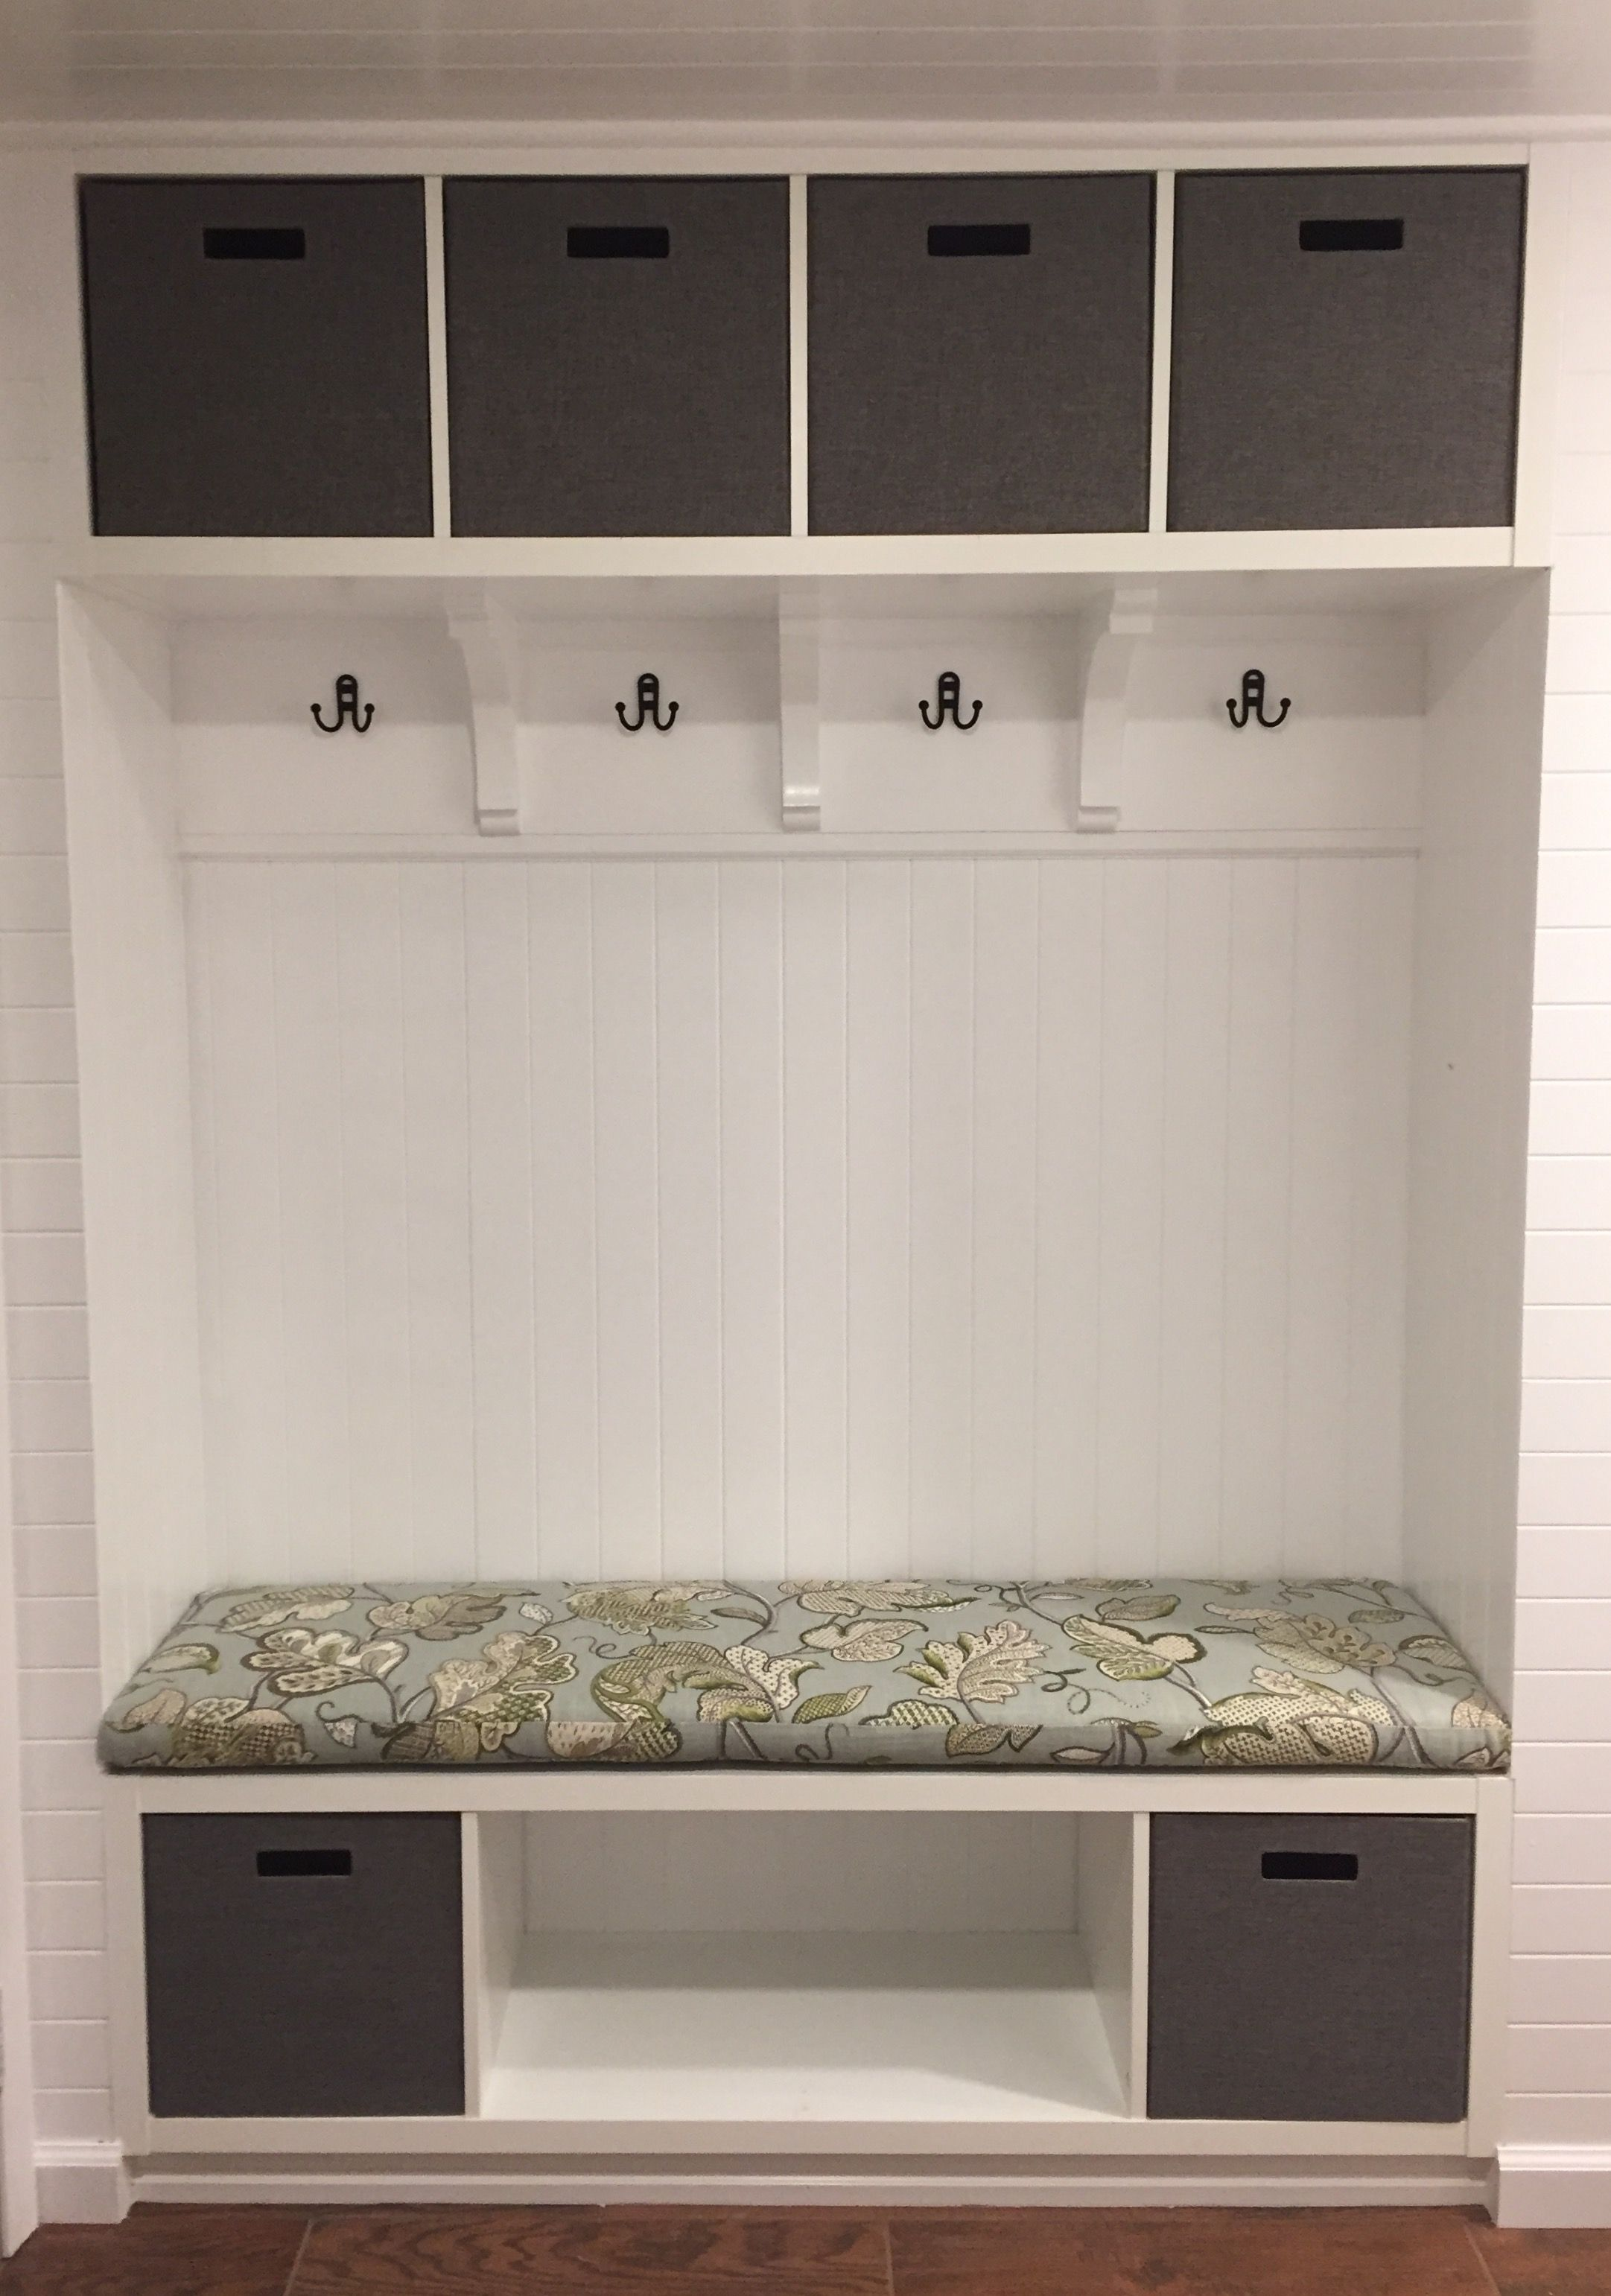 Flurmöbel Ikea 31 Genius Mudroom Ideas 2019 Mudroom Benches Storage